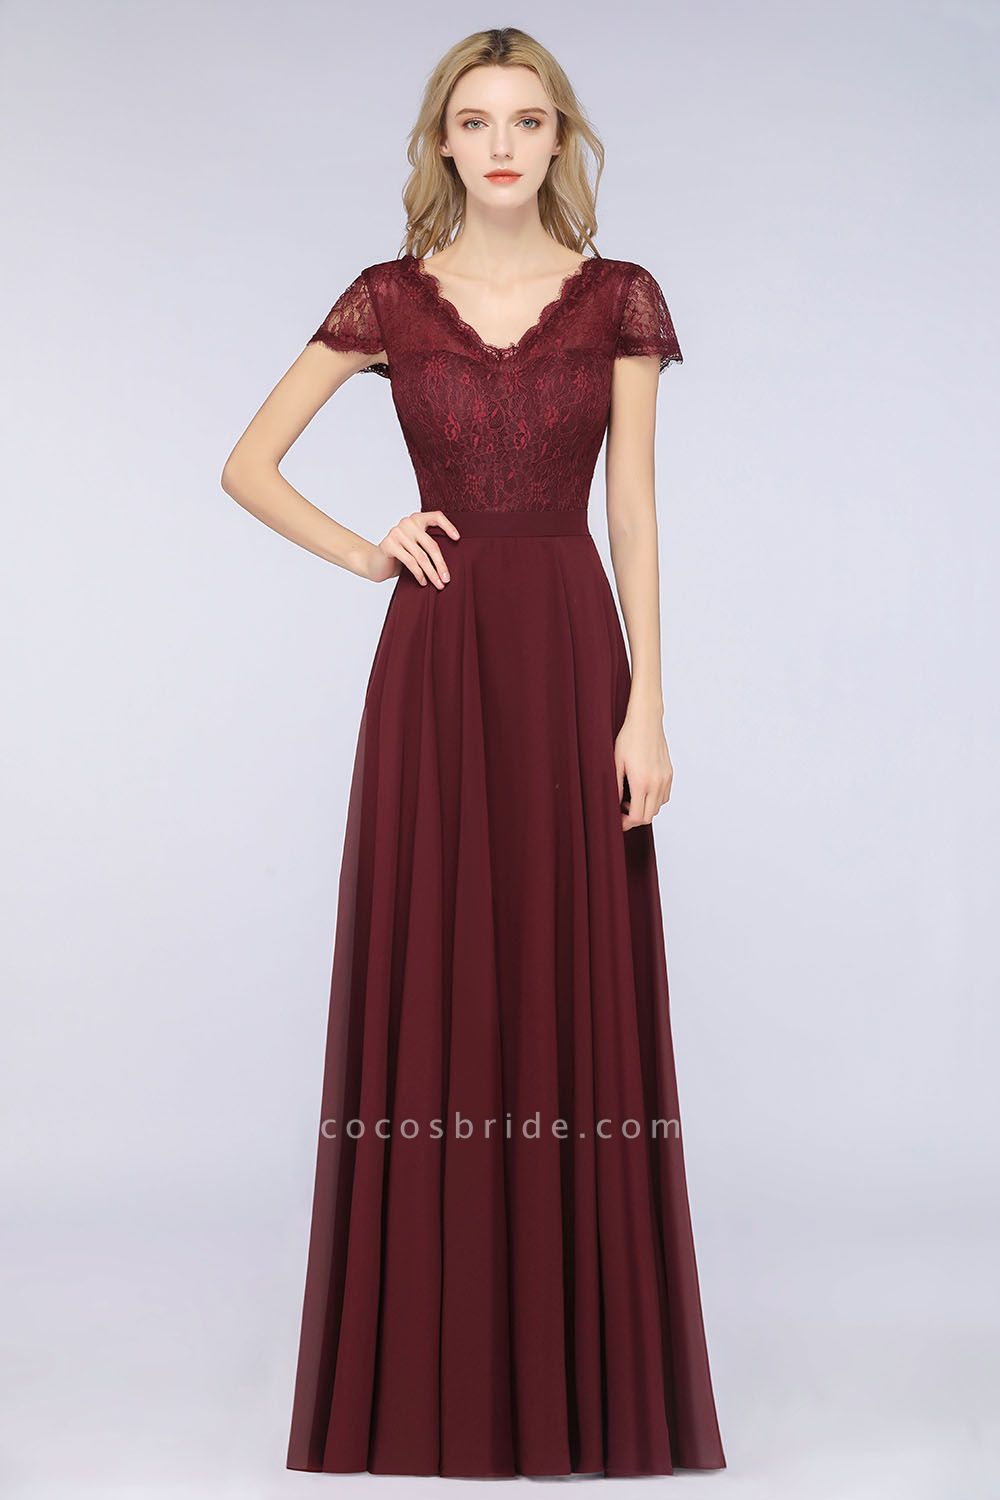 A-Line Chiffon Lace V-Neck Cap-Sleeves Floor-Length Bridesmaid Dress